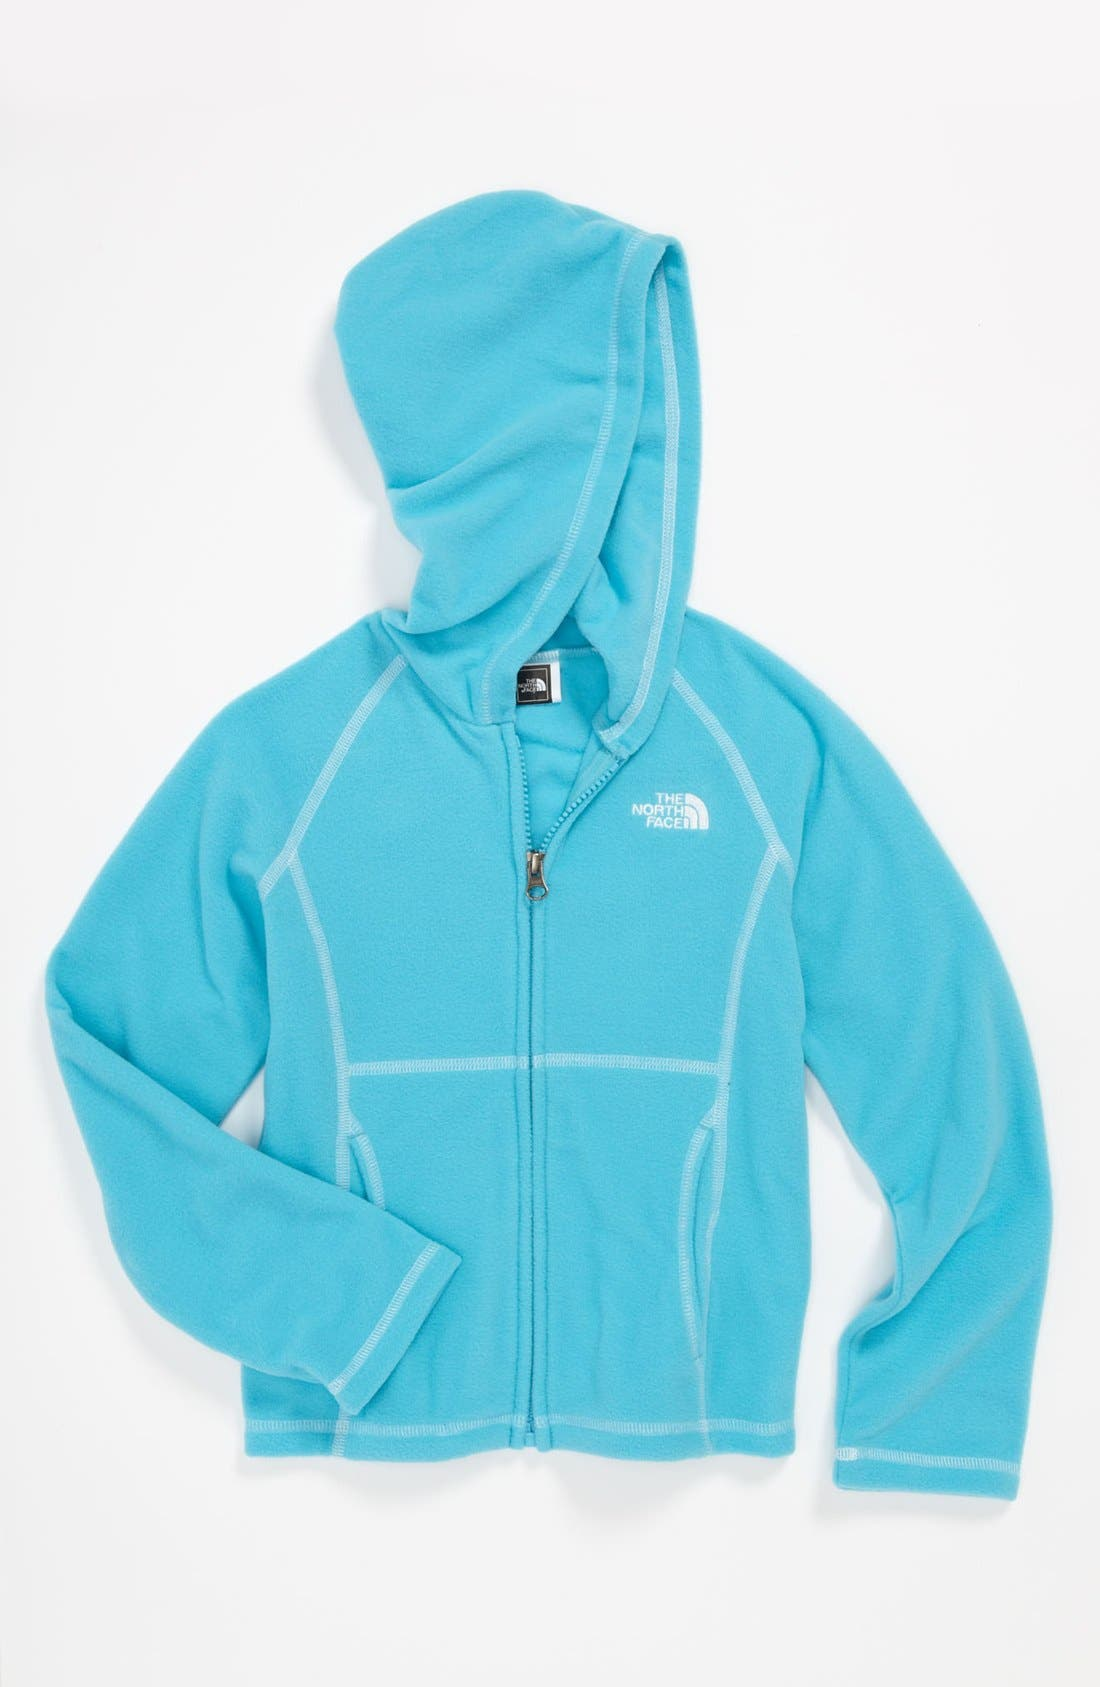 Alternate Image 1 Selected - The North Face 'Glacier' Hoodie (Little Girls & Big Girls)